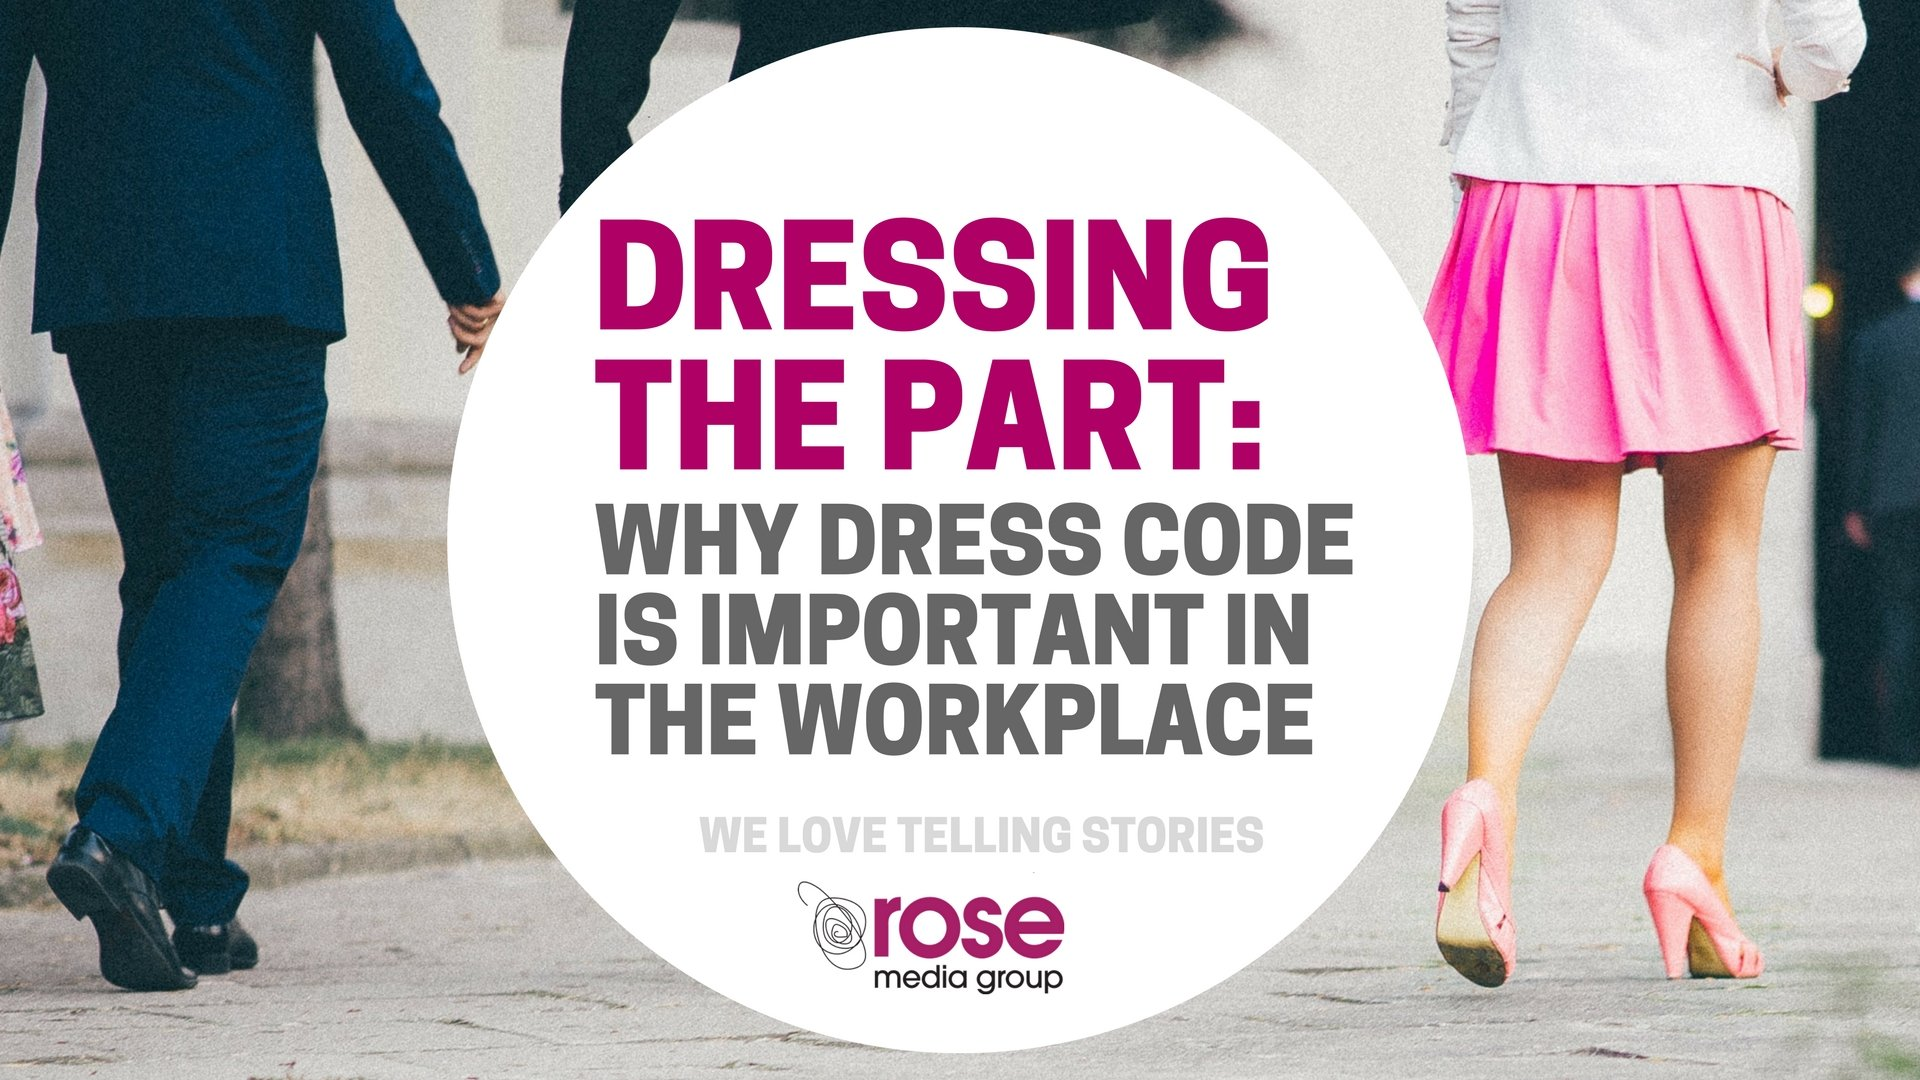 The Importance Of A Dress Code For Professionalism |